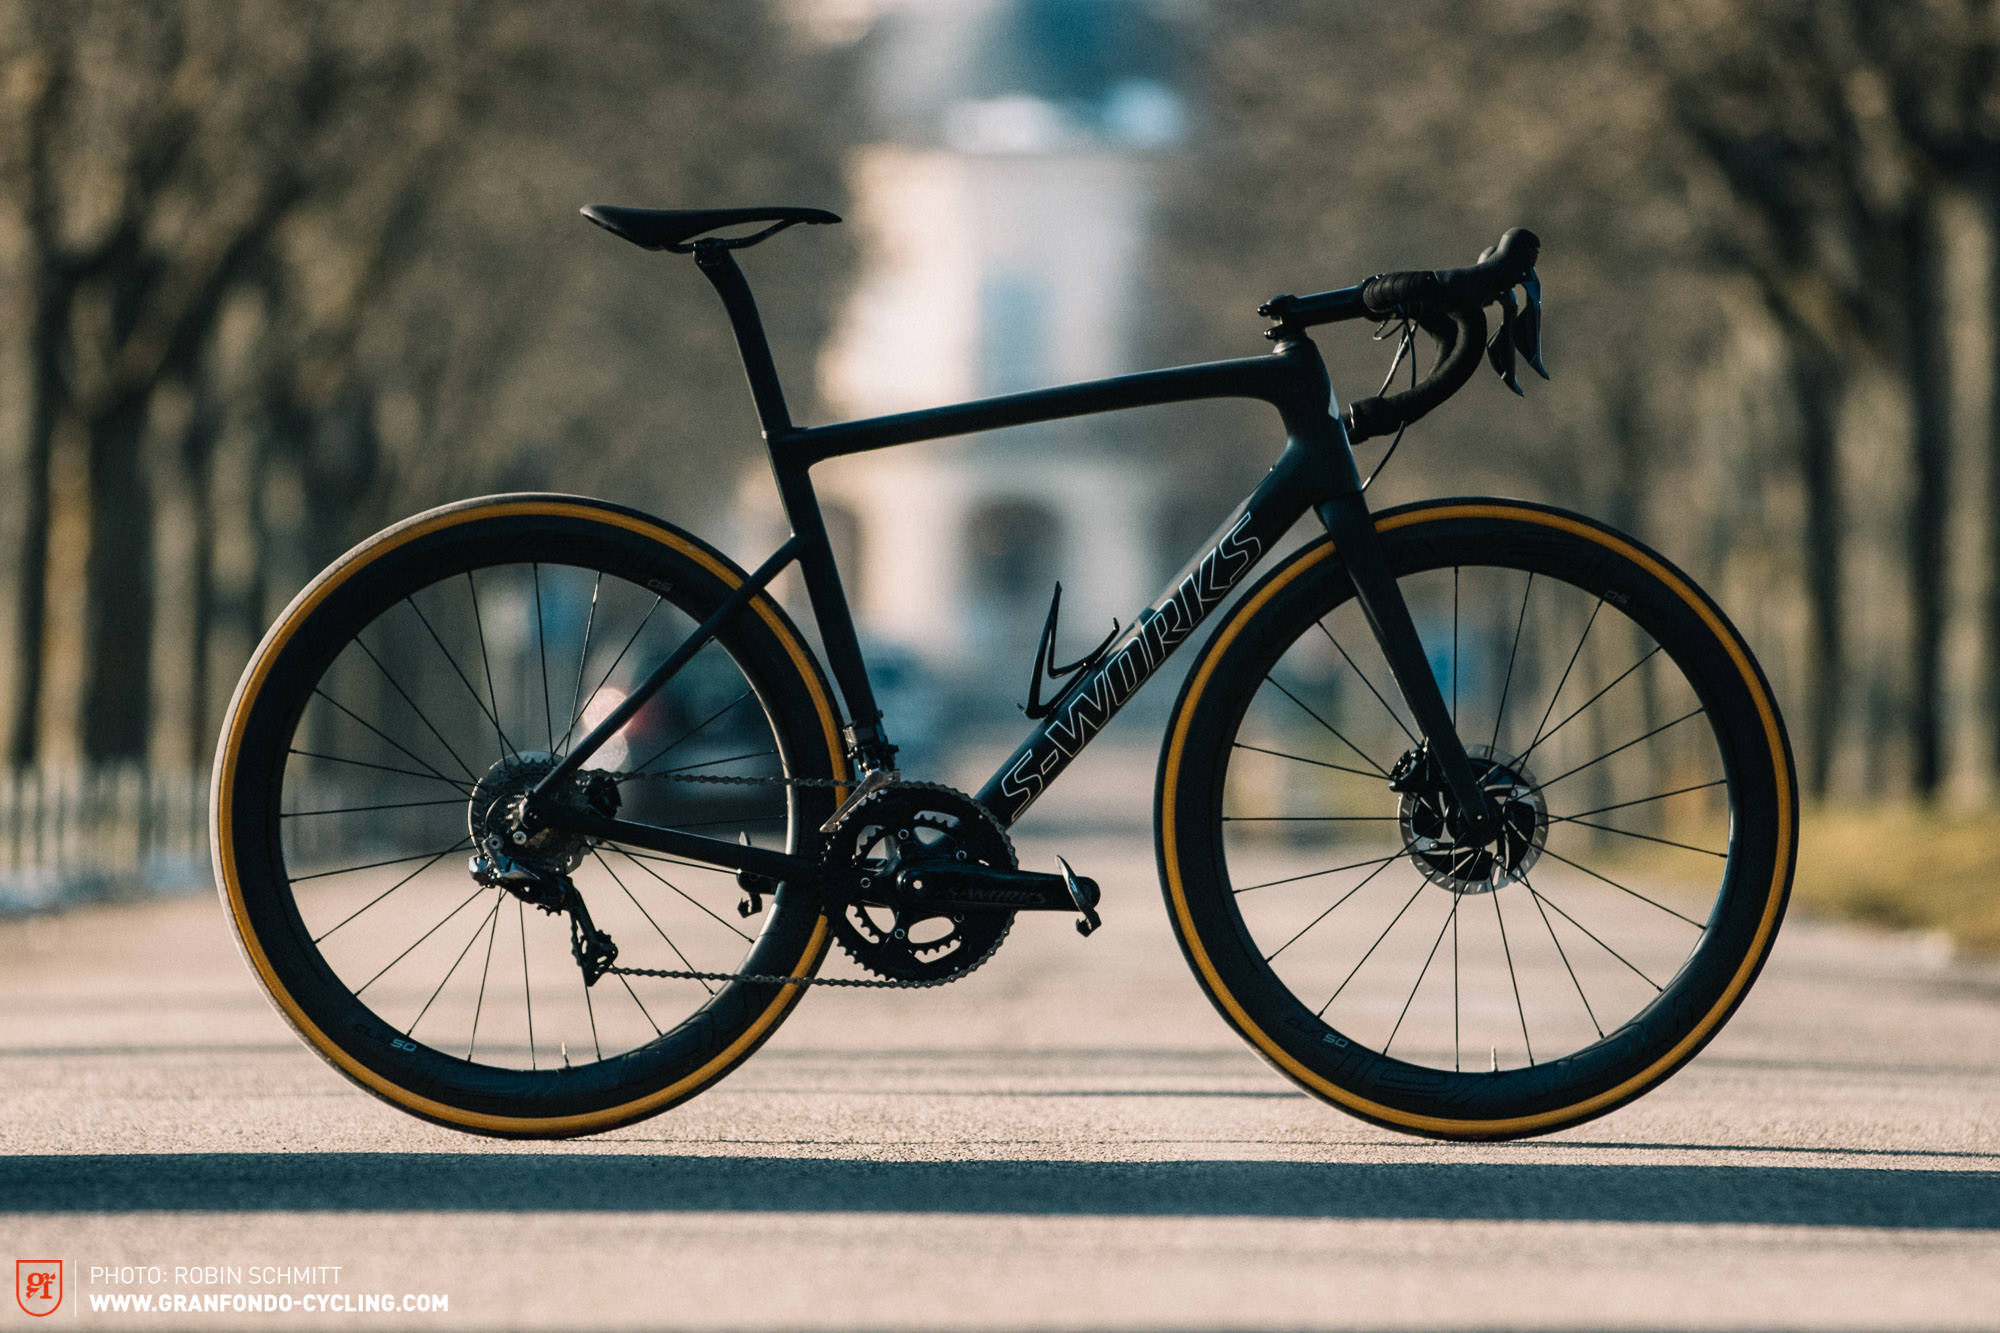 9de3f42b320 First Ride Review: Specialized S-Works Tarmac Disc 2018 – Disc vs. Rim  Brakes